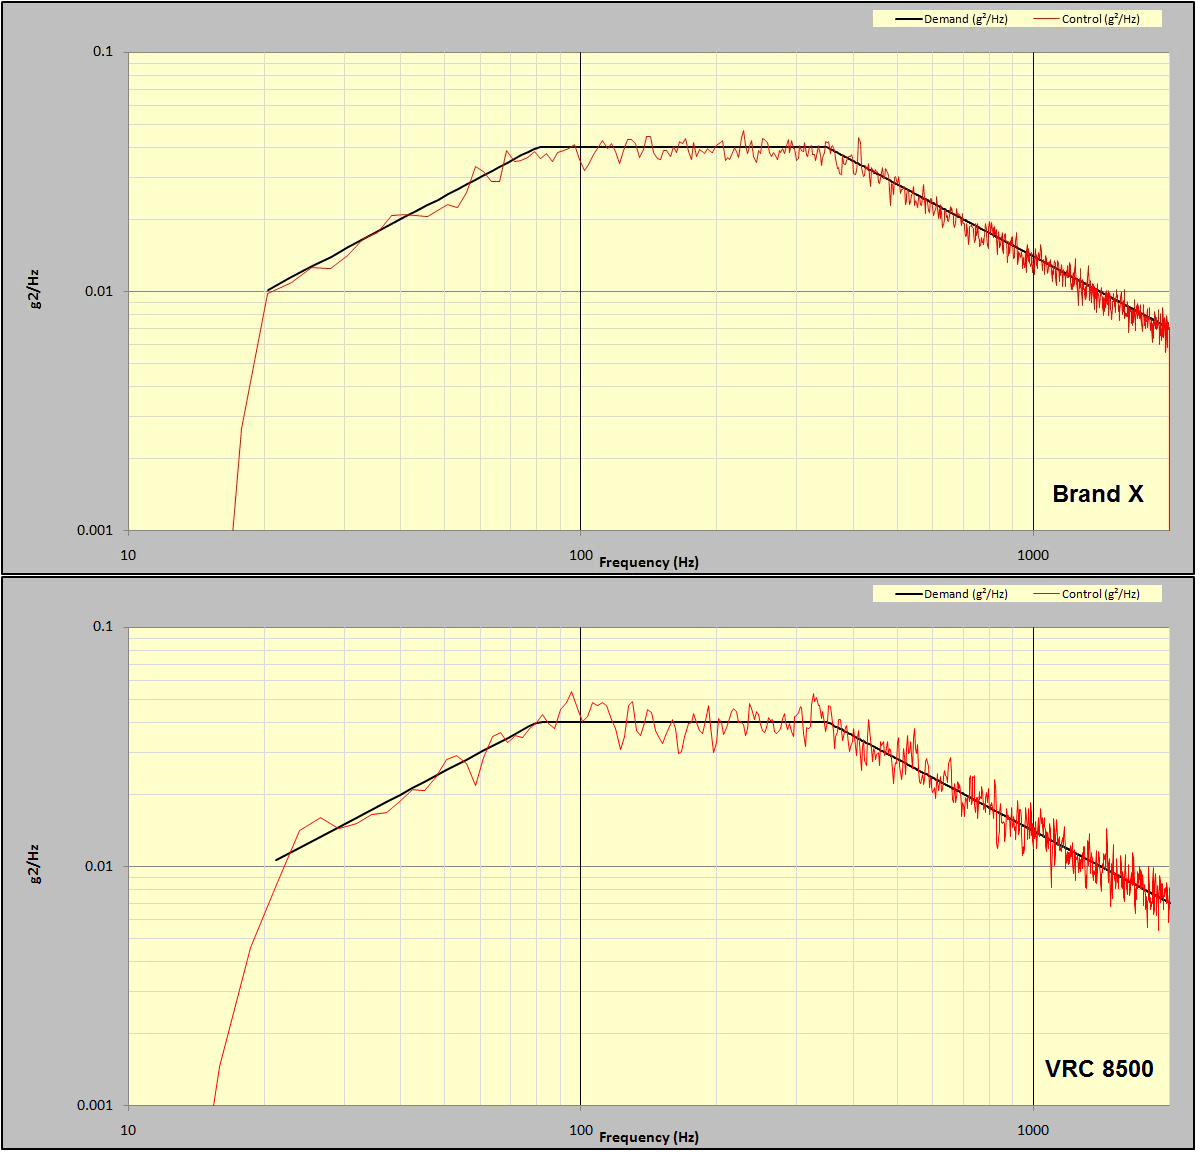 Figure 12: Comparison of NAVMAT test run on Brand X and VR8500 controllers.